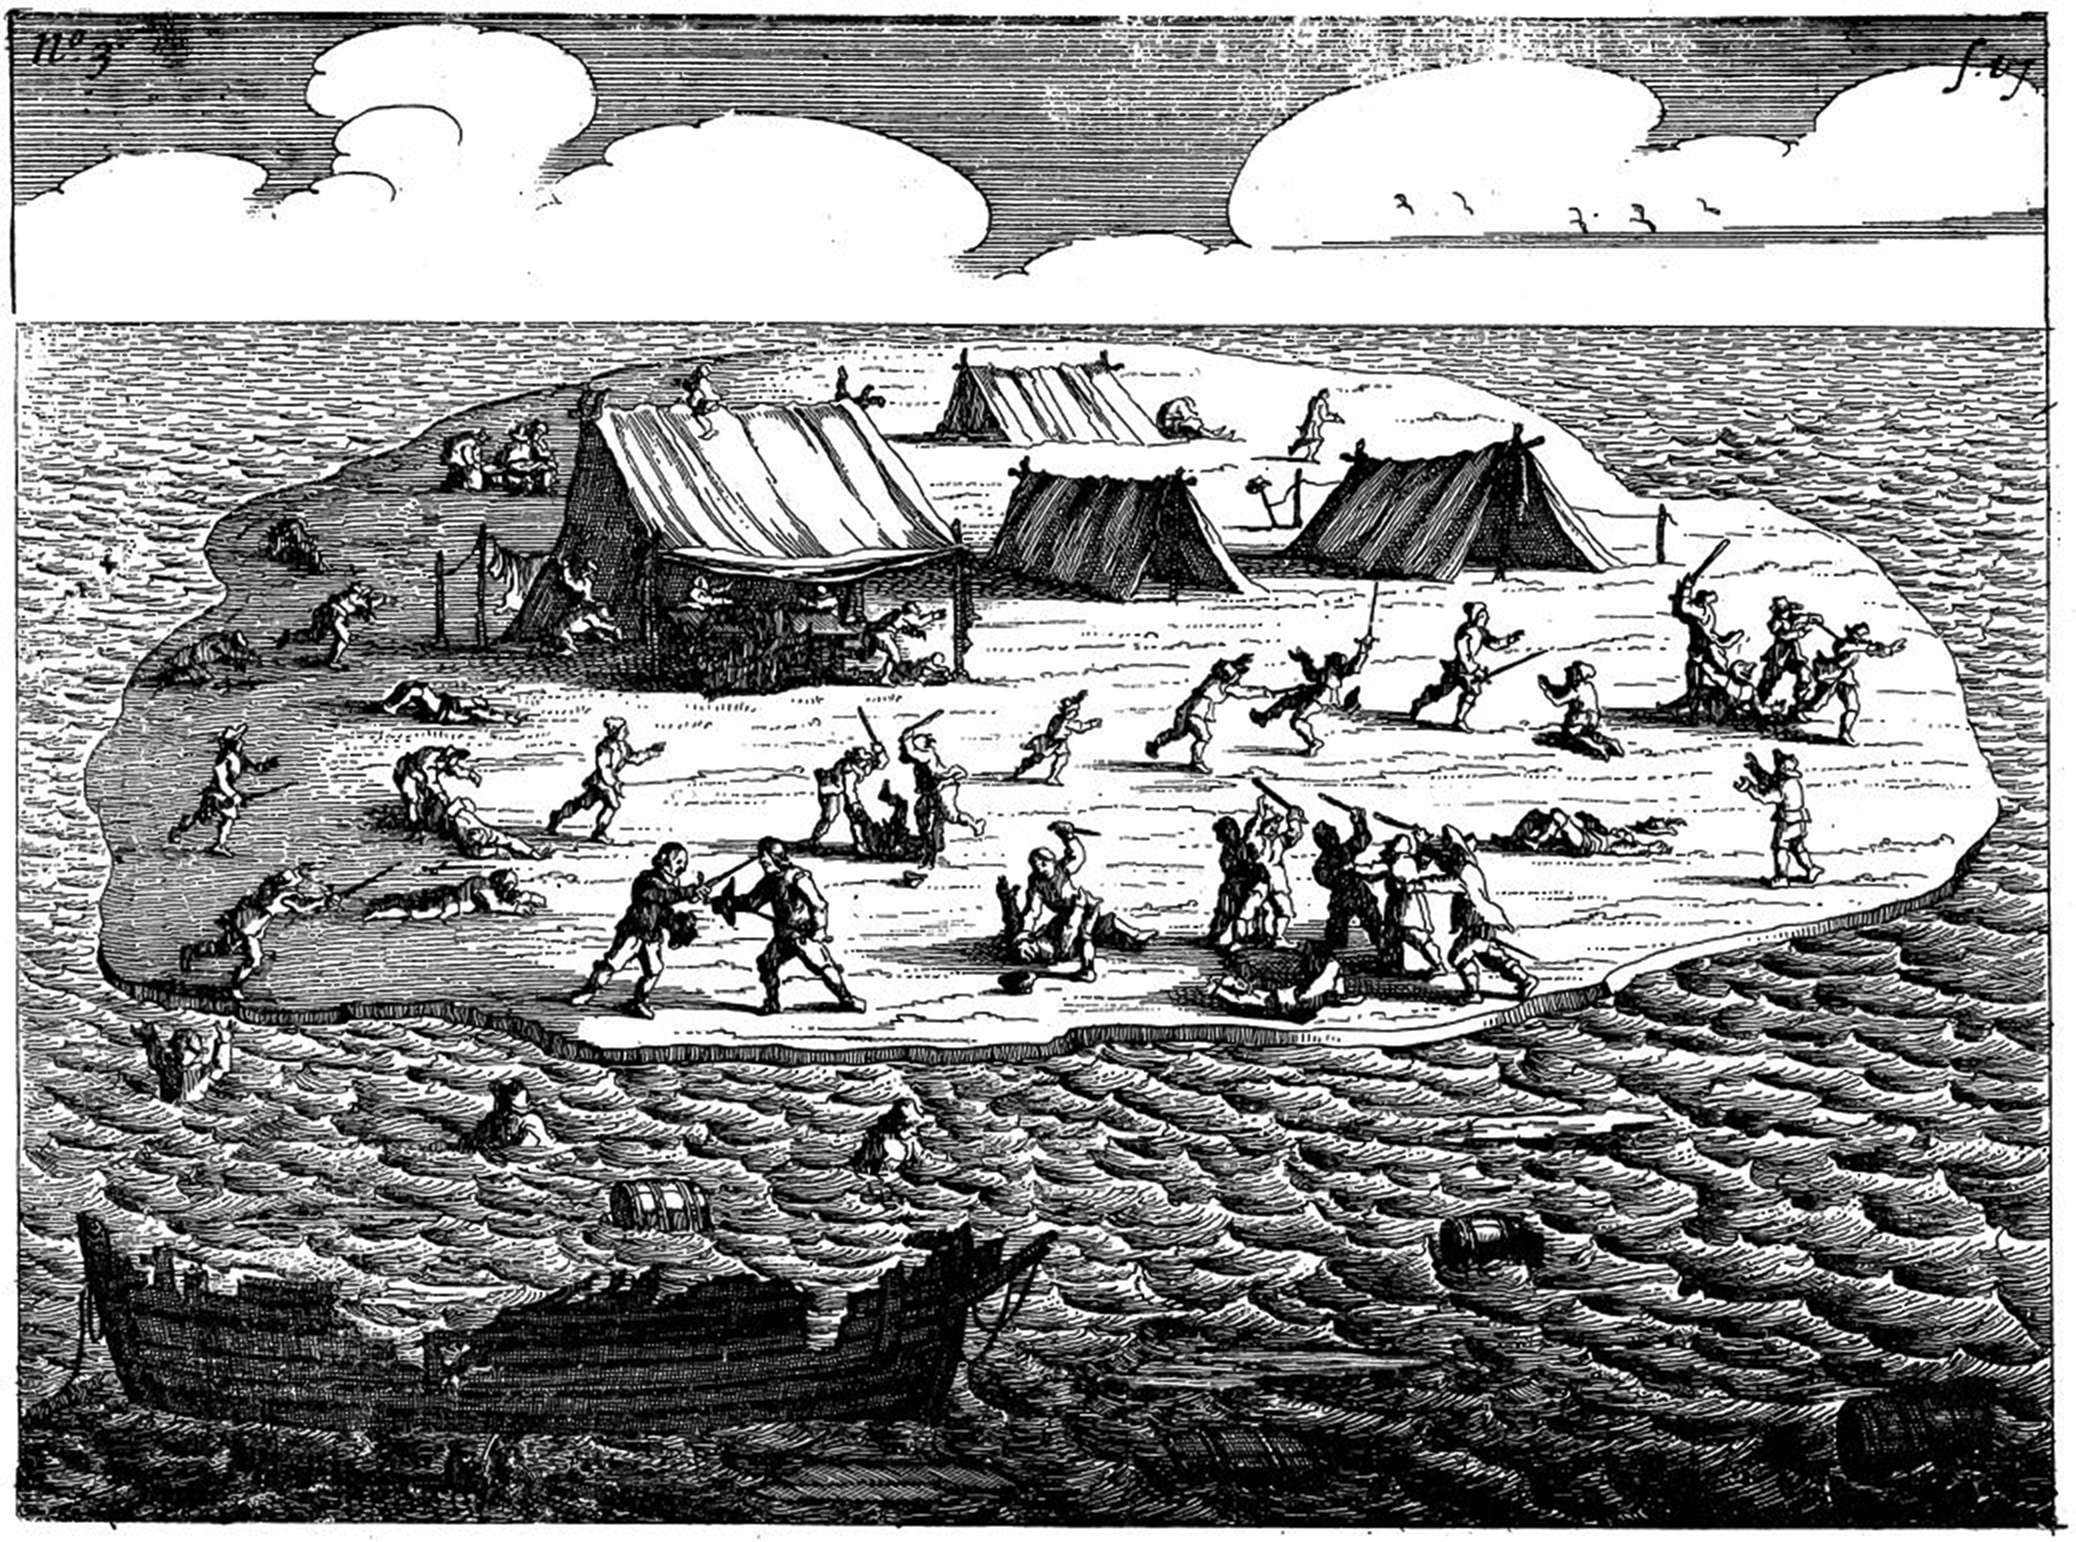 The marooned people on Batavia's Graveyard play a game of hide and seek to pass the time – from the Jan Jansz 1647 edition of  Ongeluckige Voyagie .  Source .